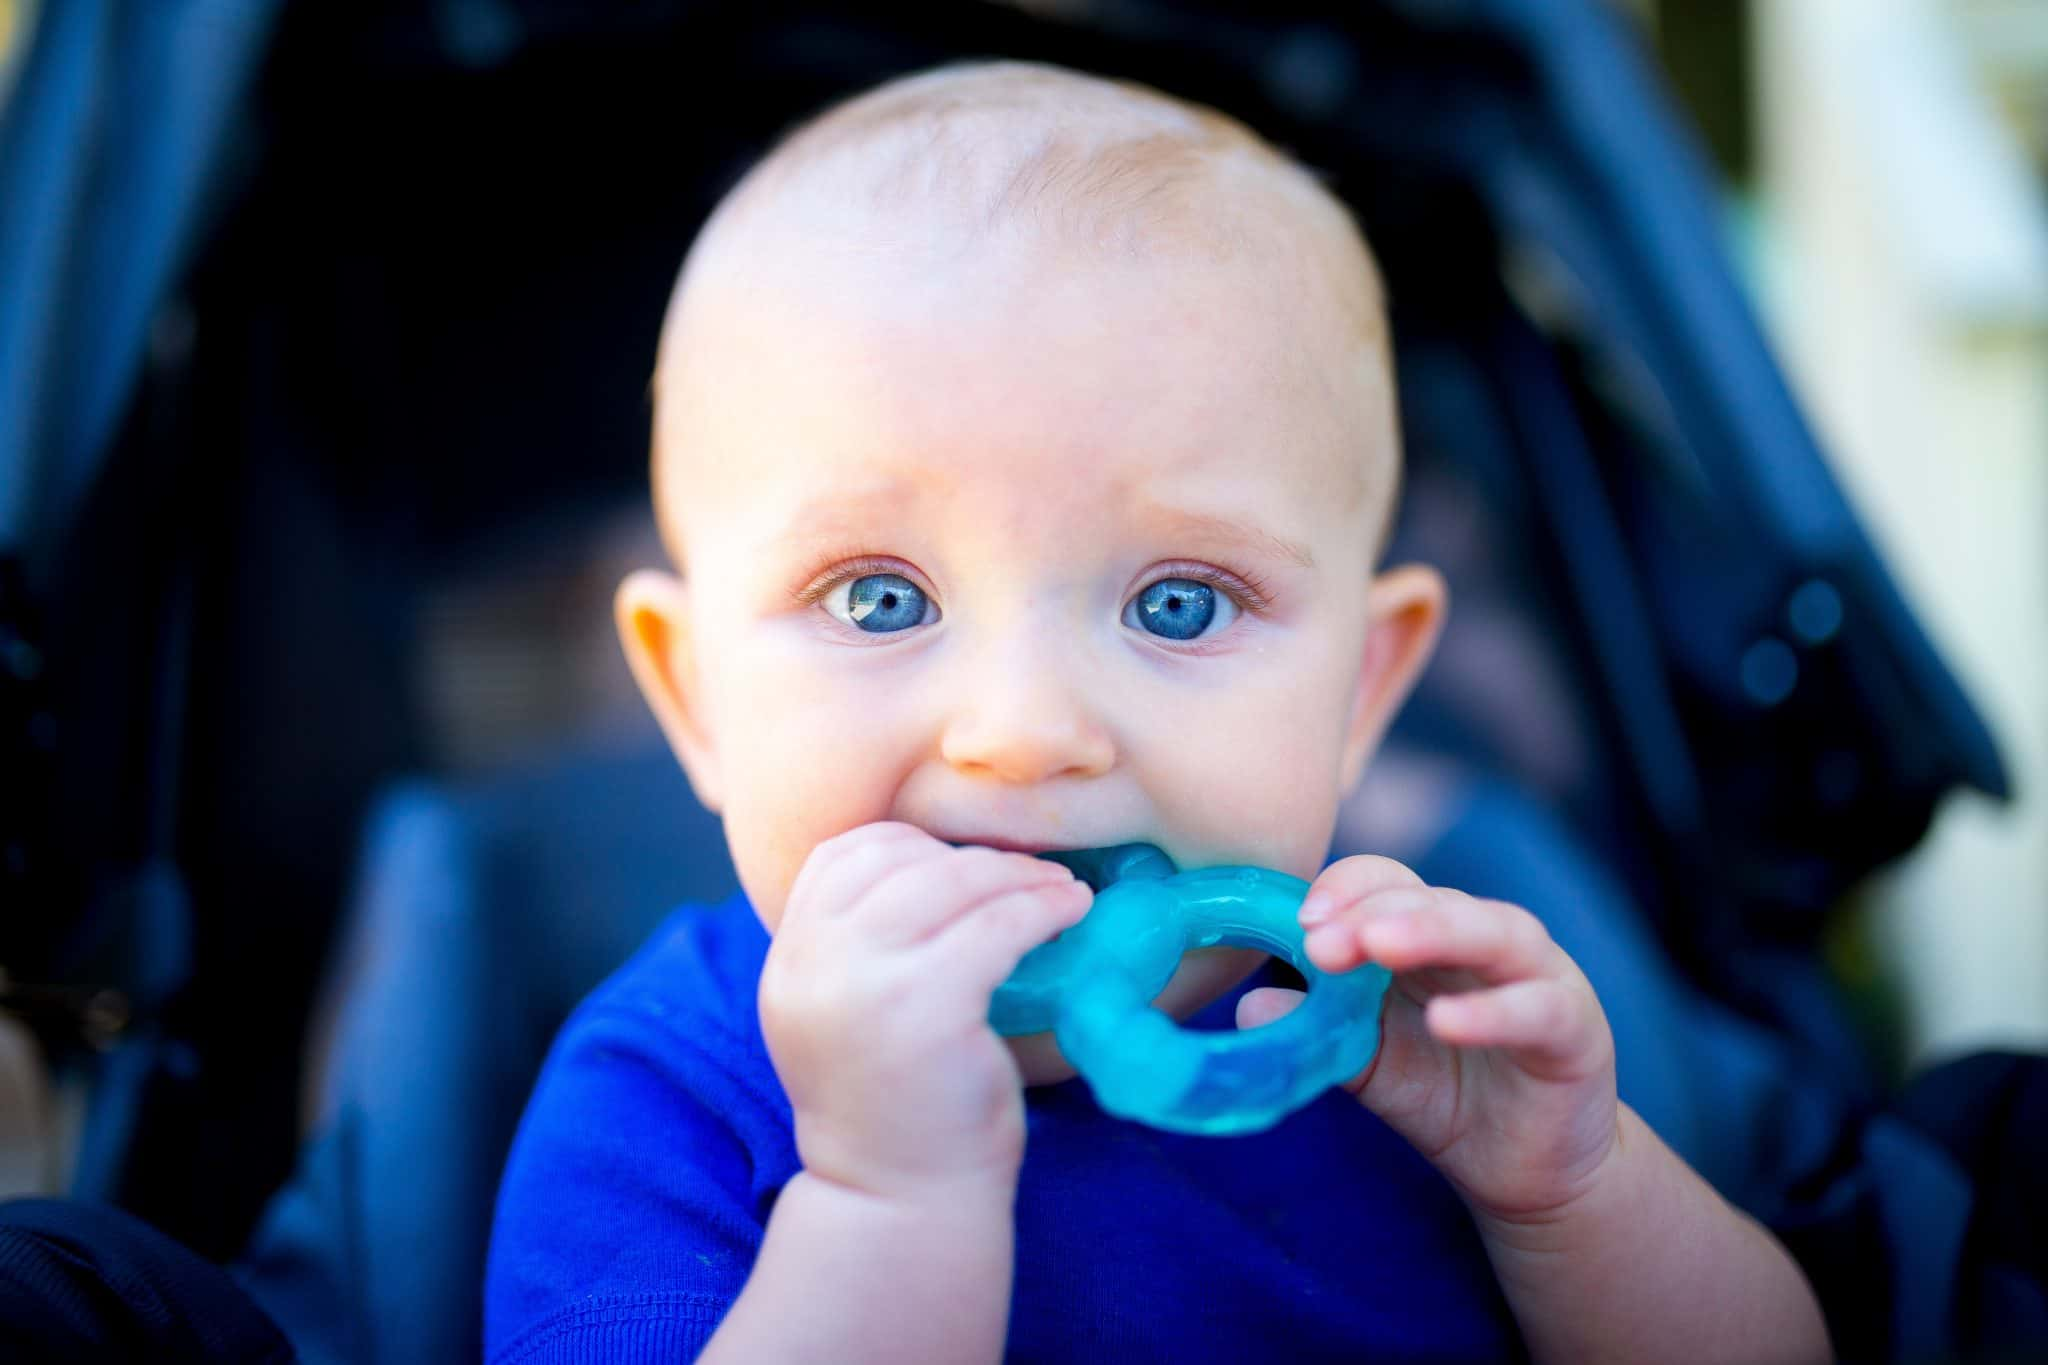 teething can make your baby cry more than usual